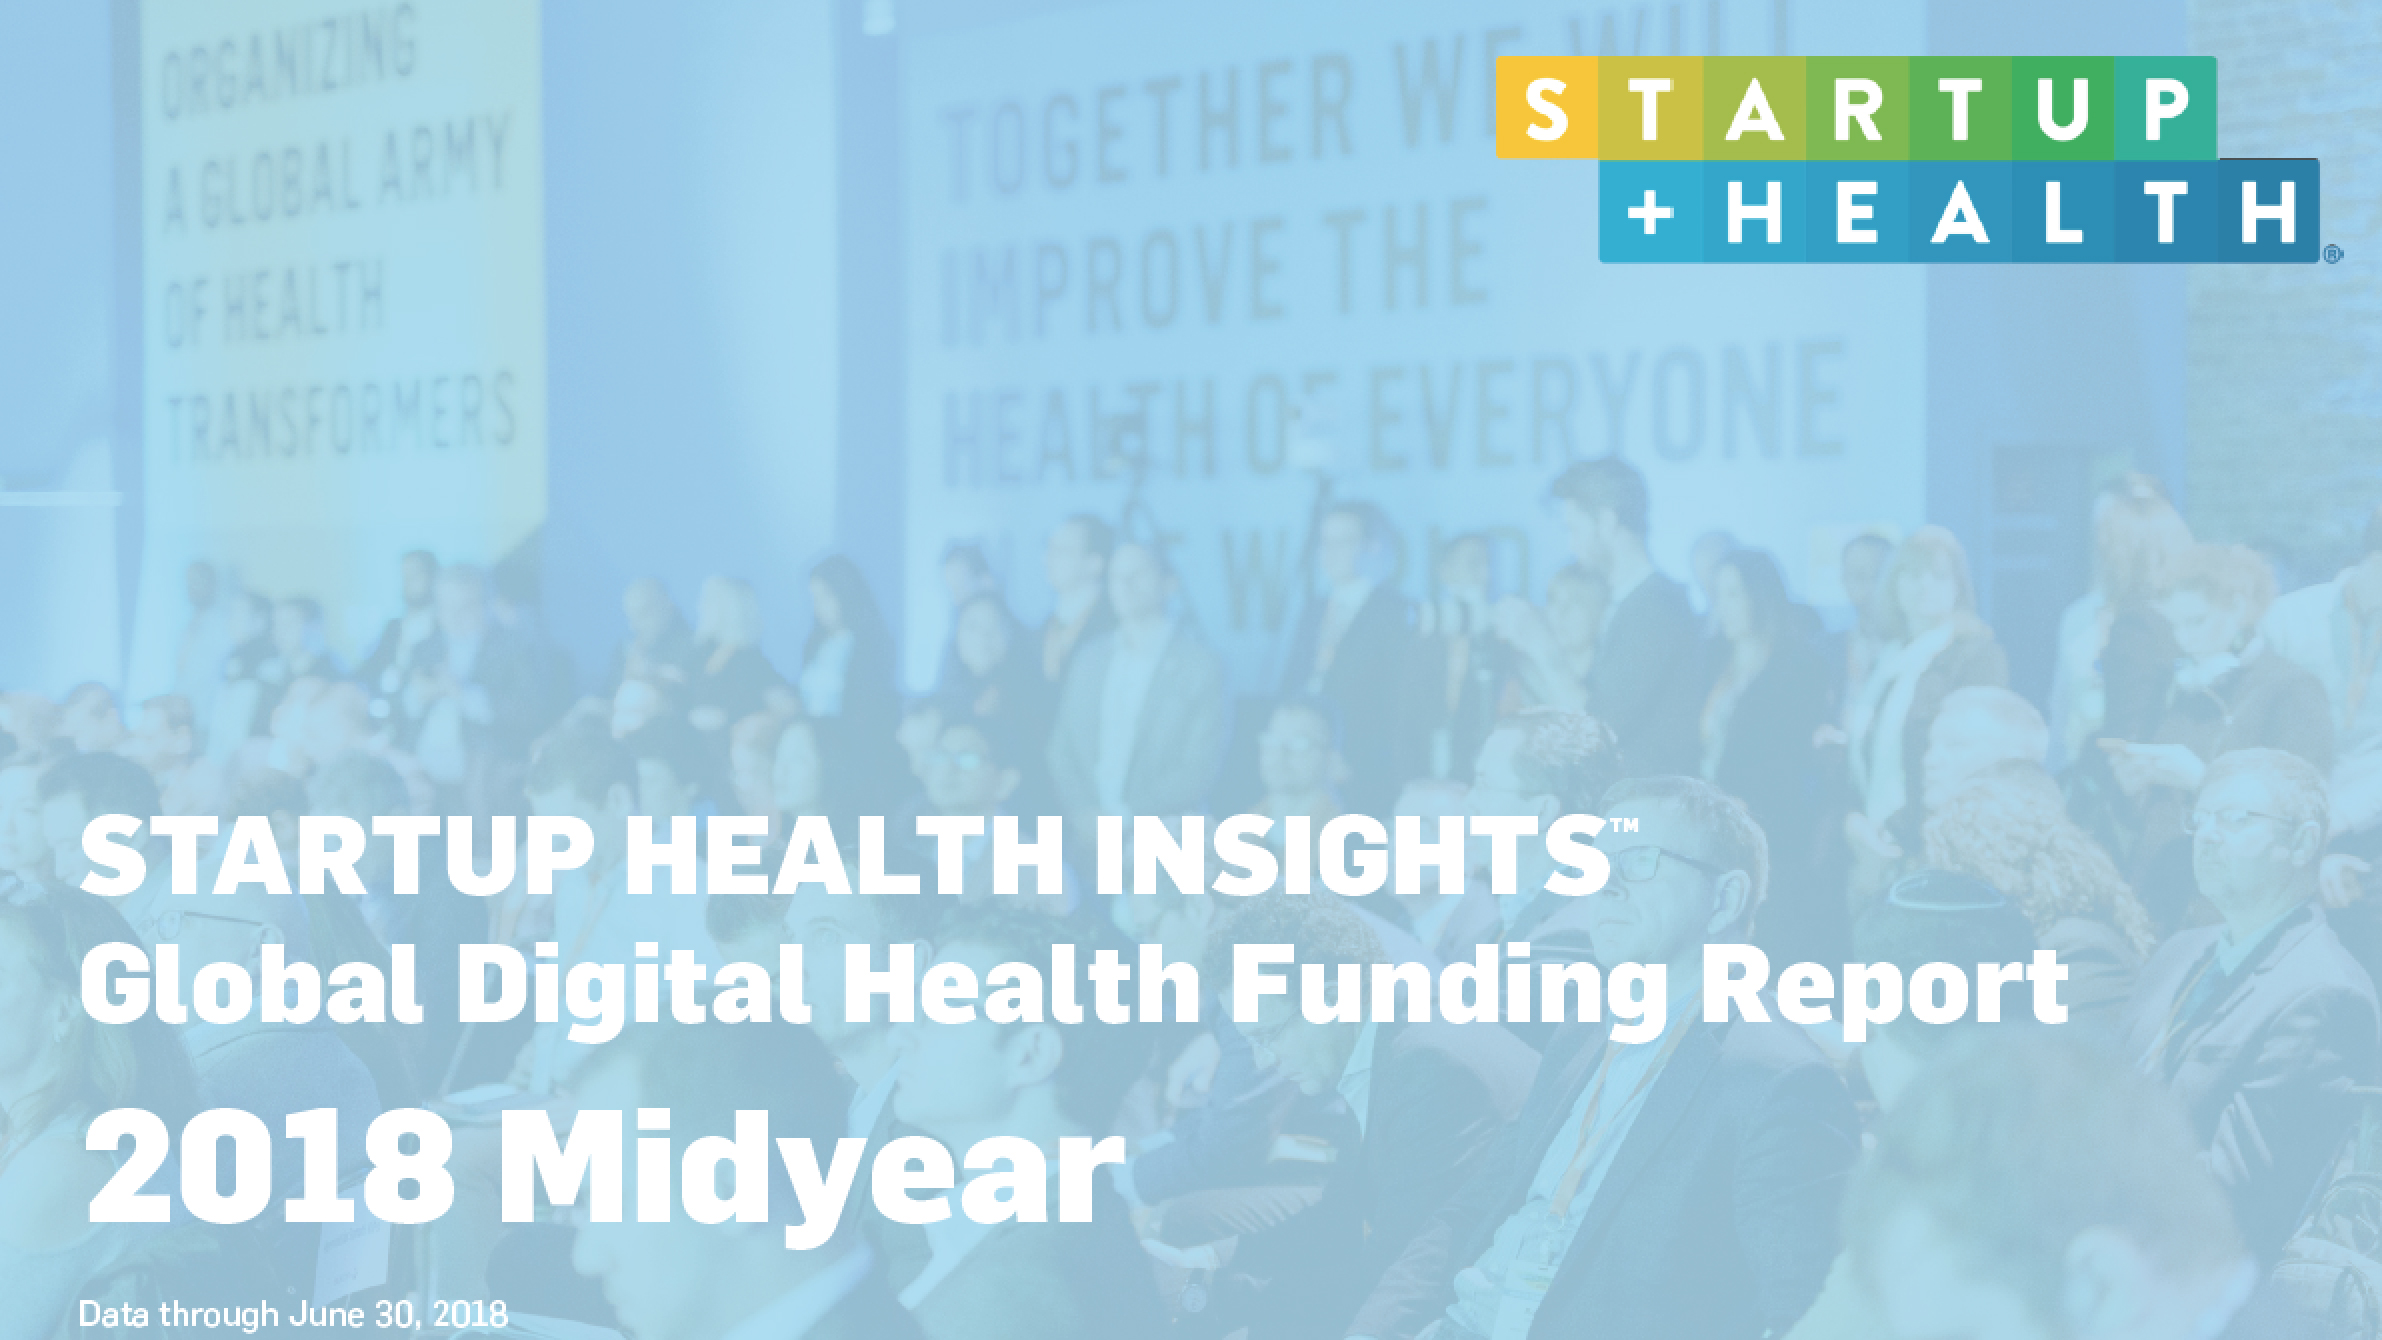 StartUp Health Insights 2018 Midyear Funding Report